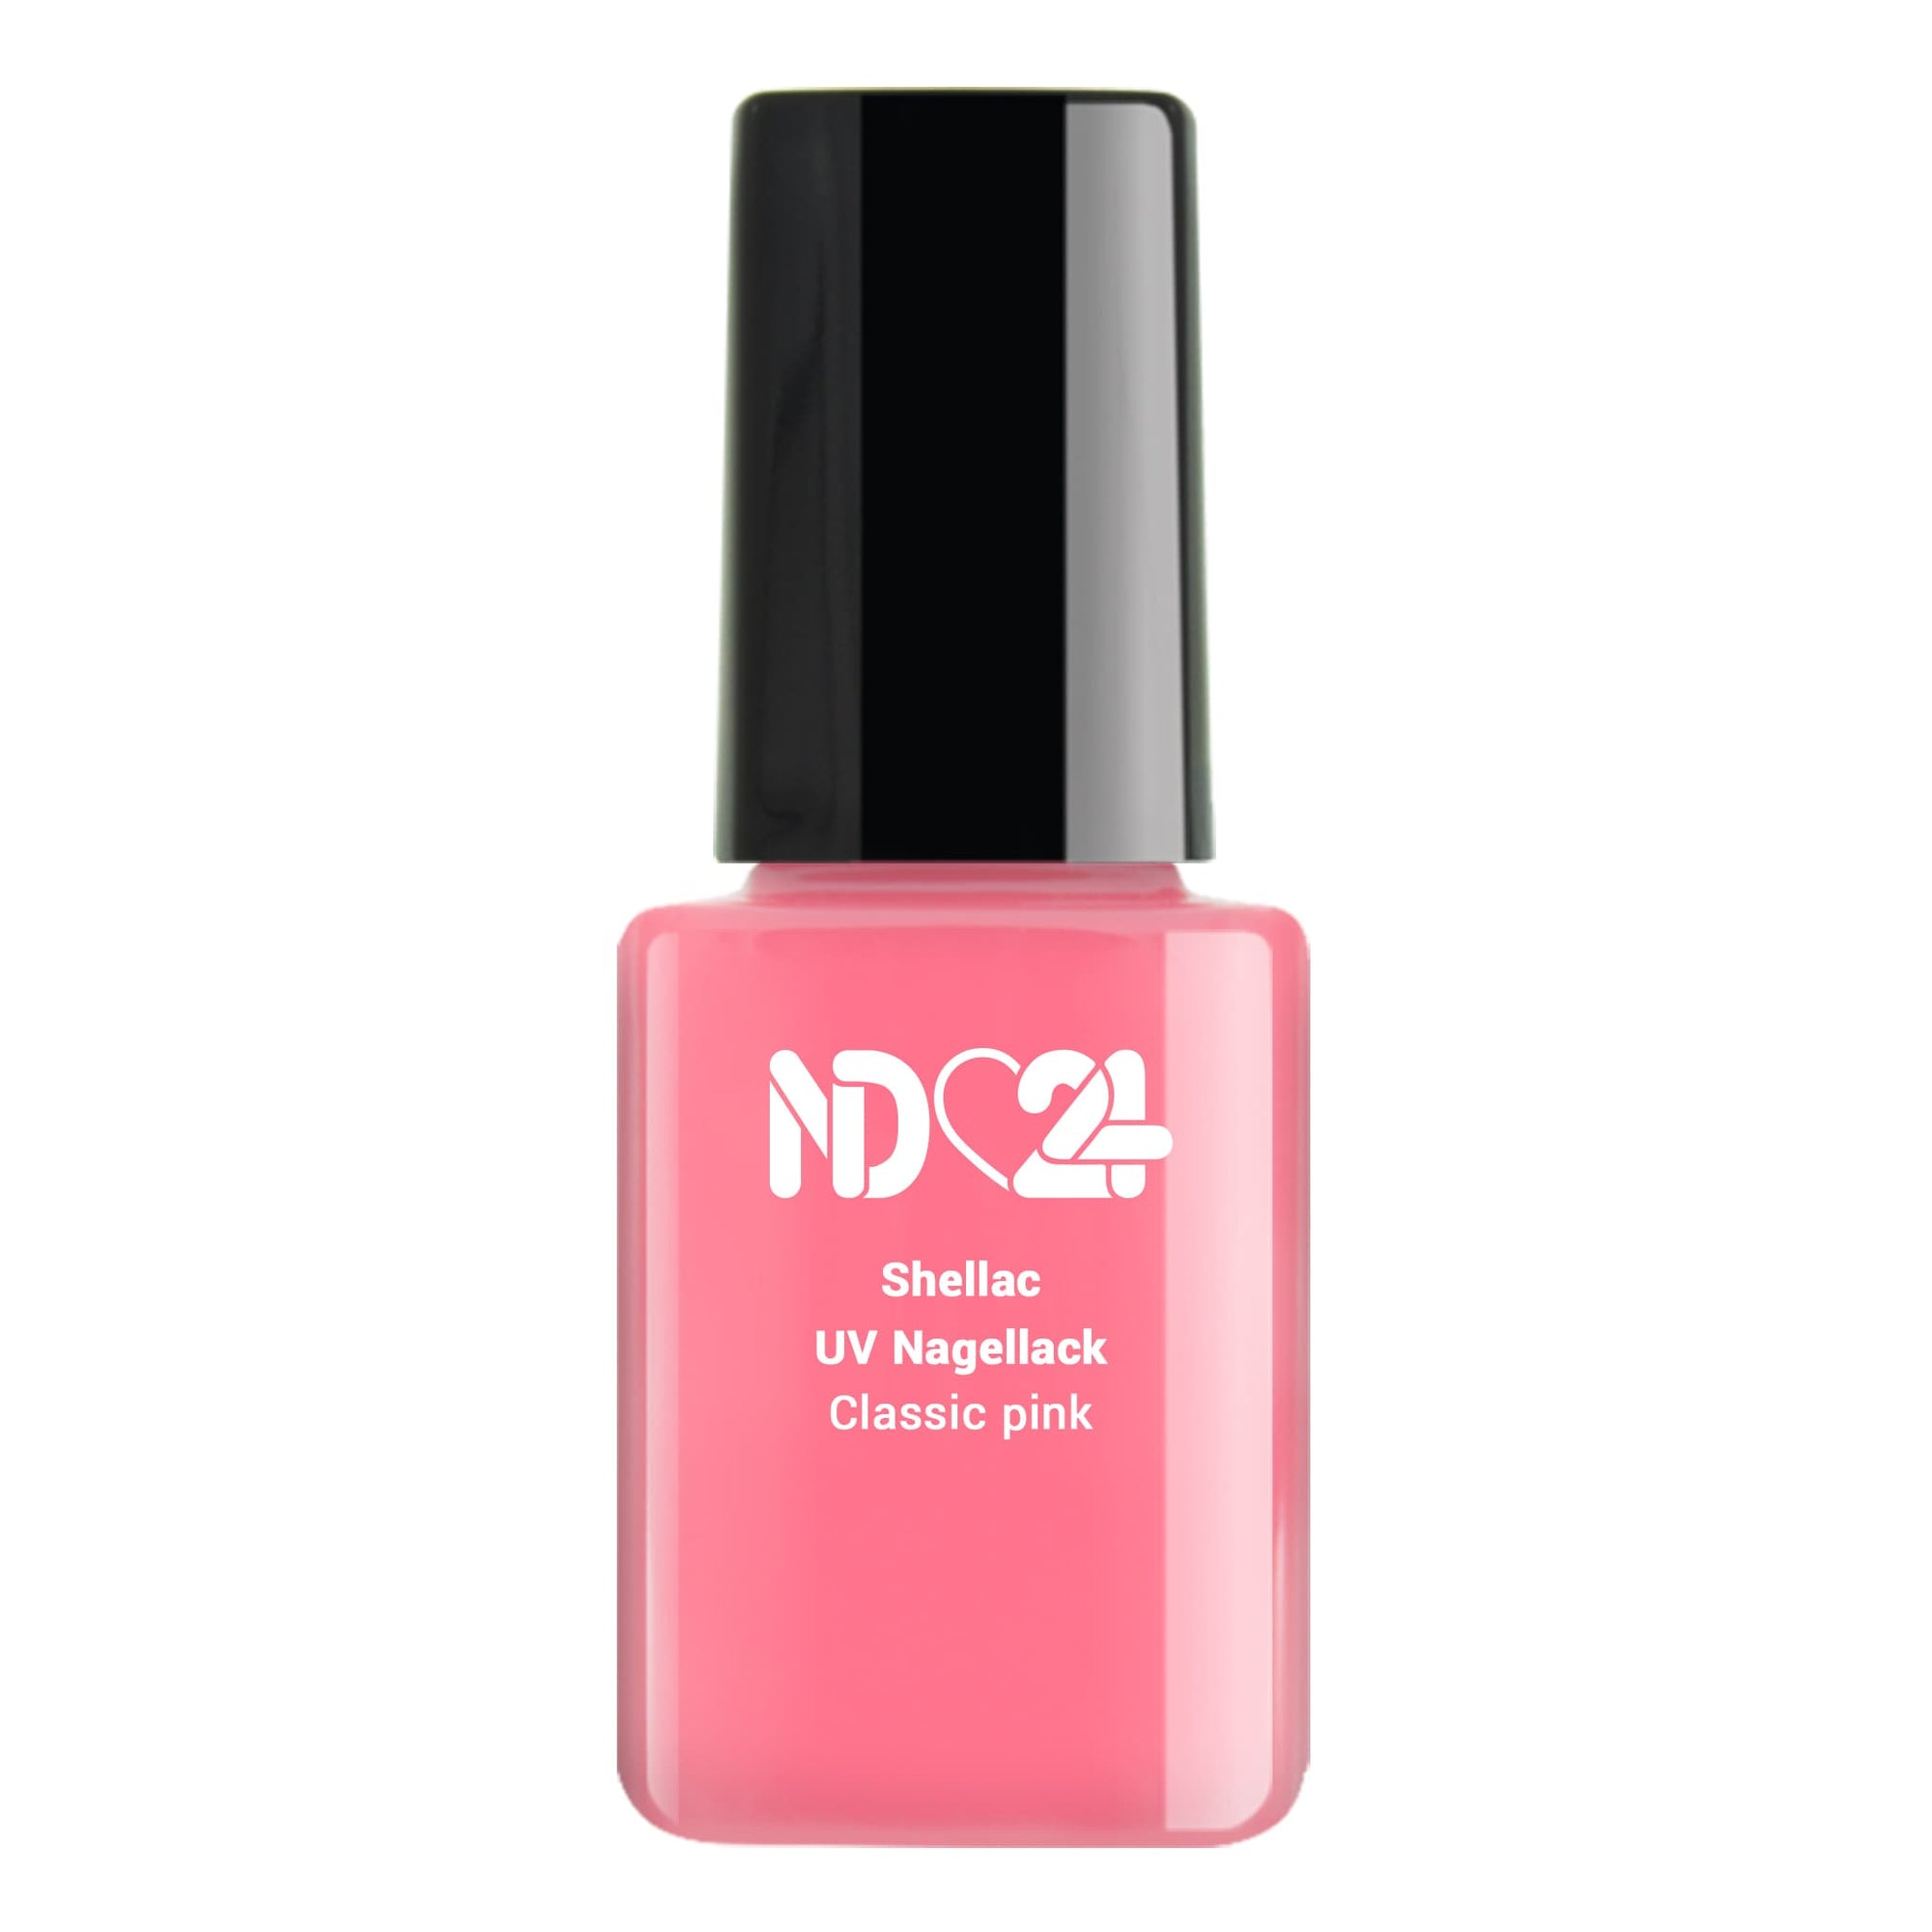 Shellac Classic pink